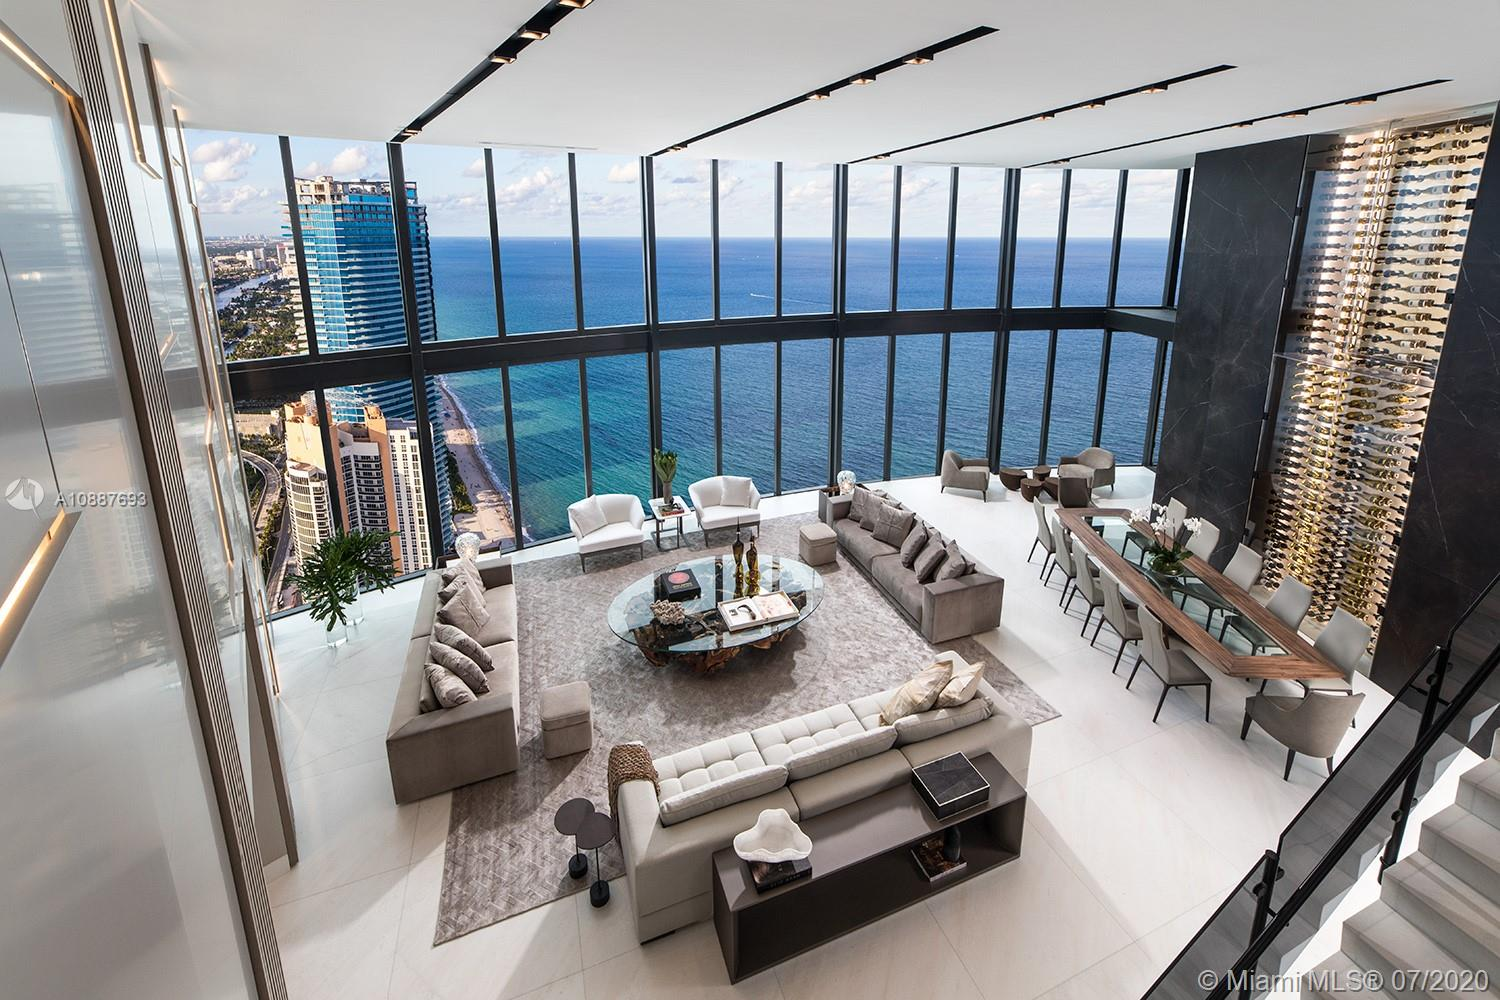 18555 Collins Ave, Unit #5205 Luxury Real Estate